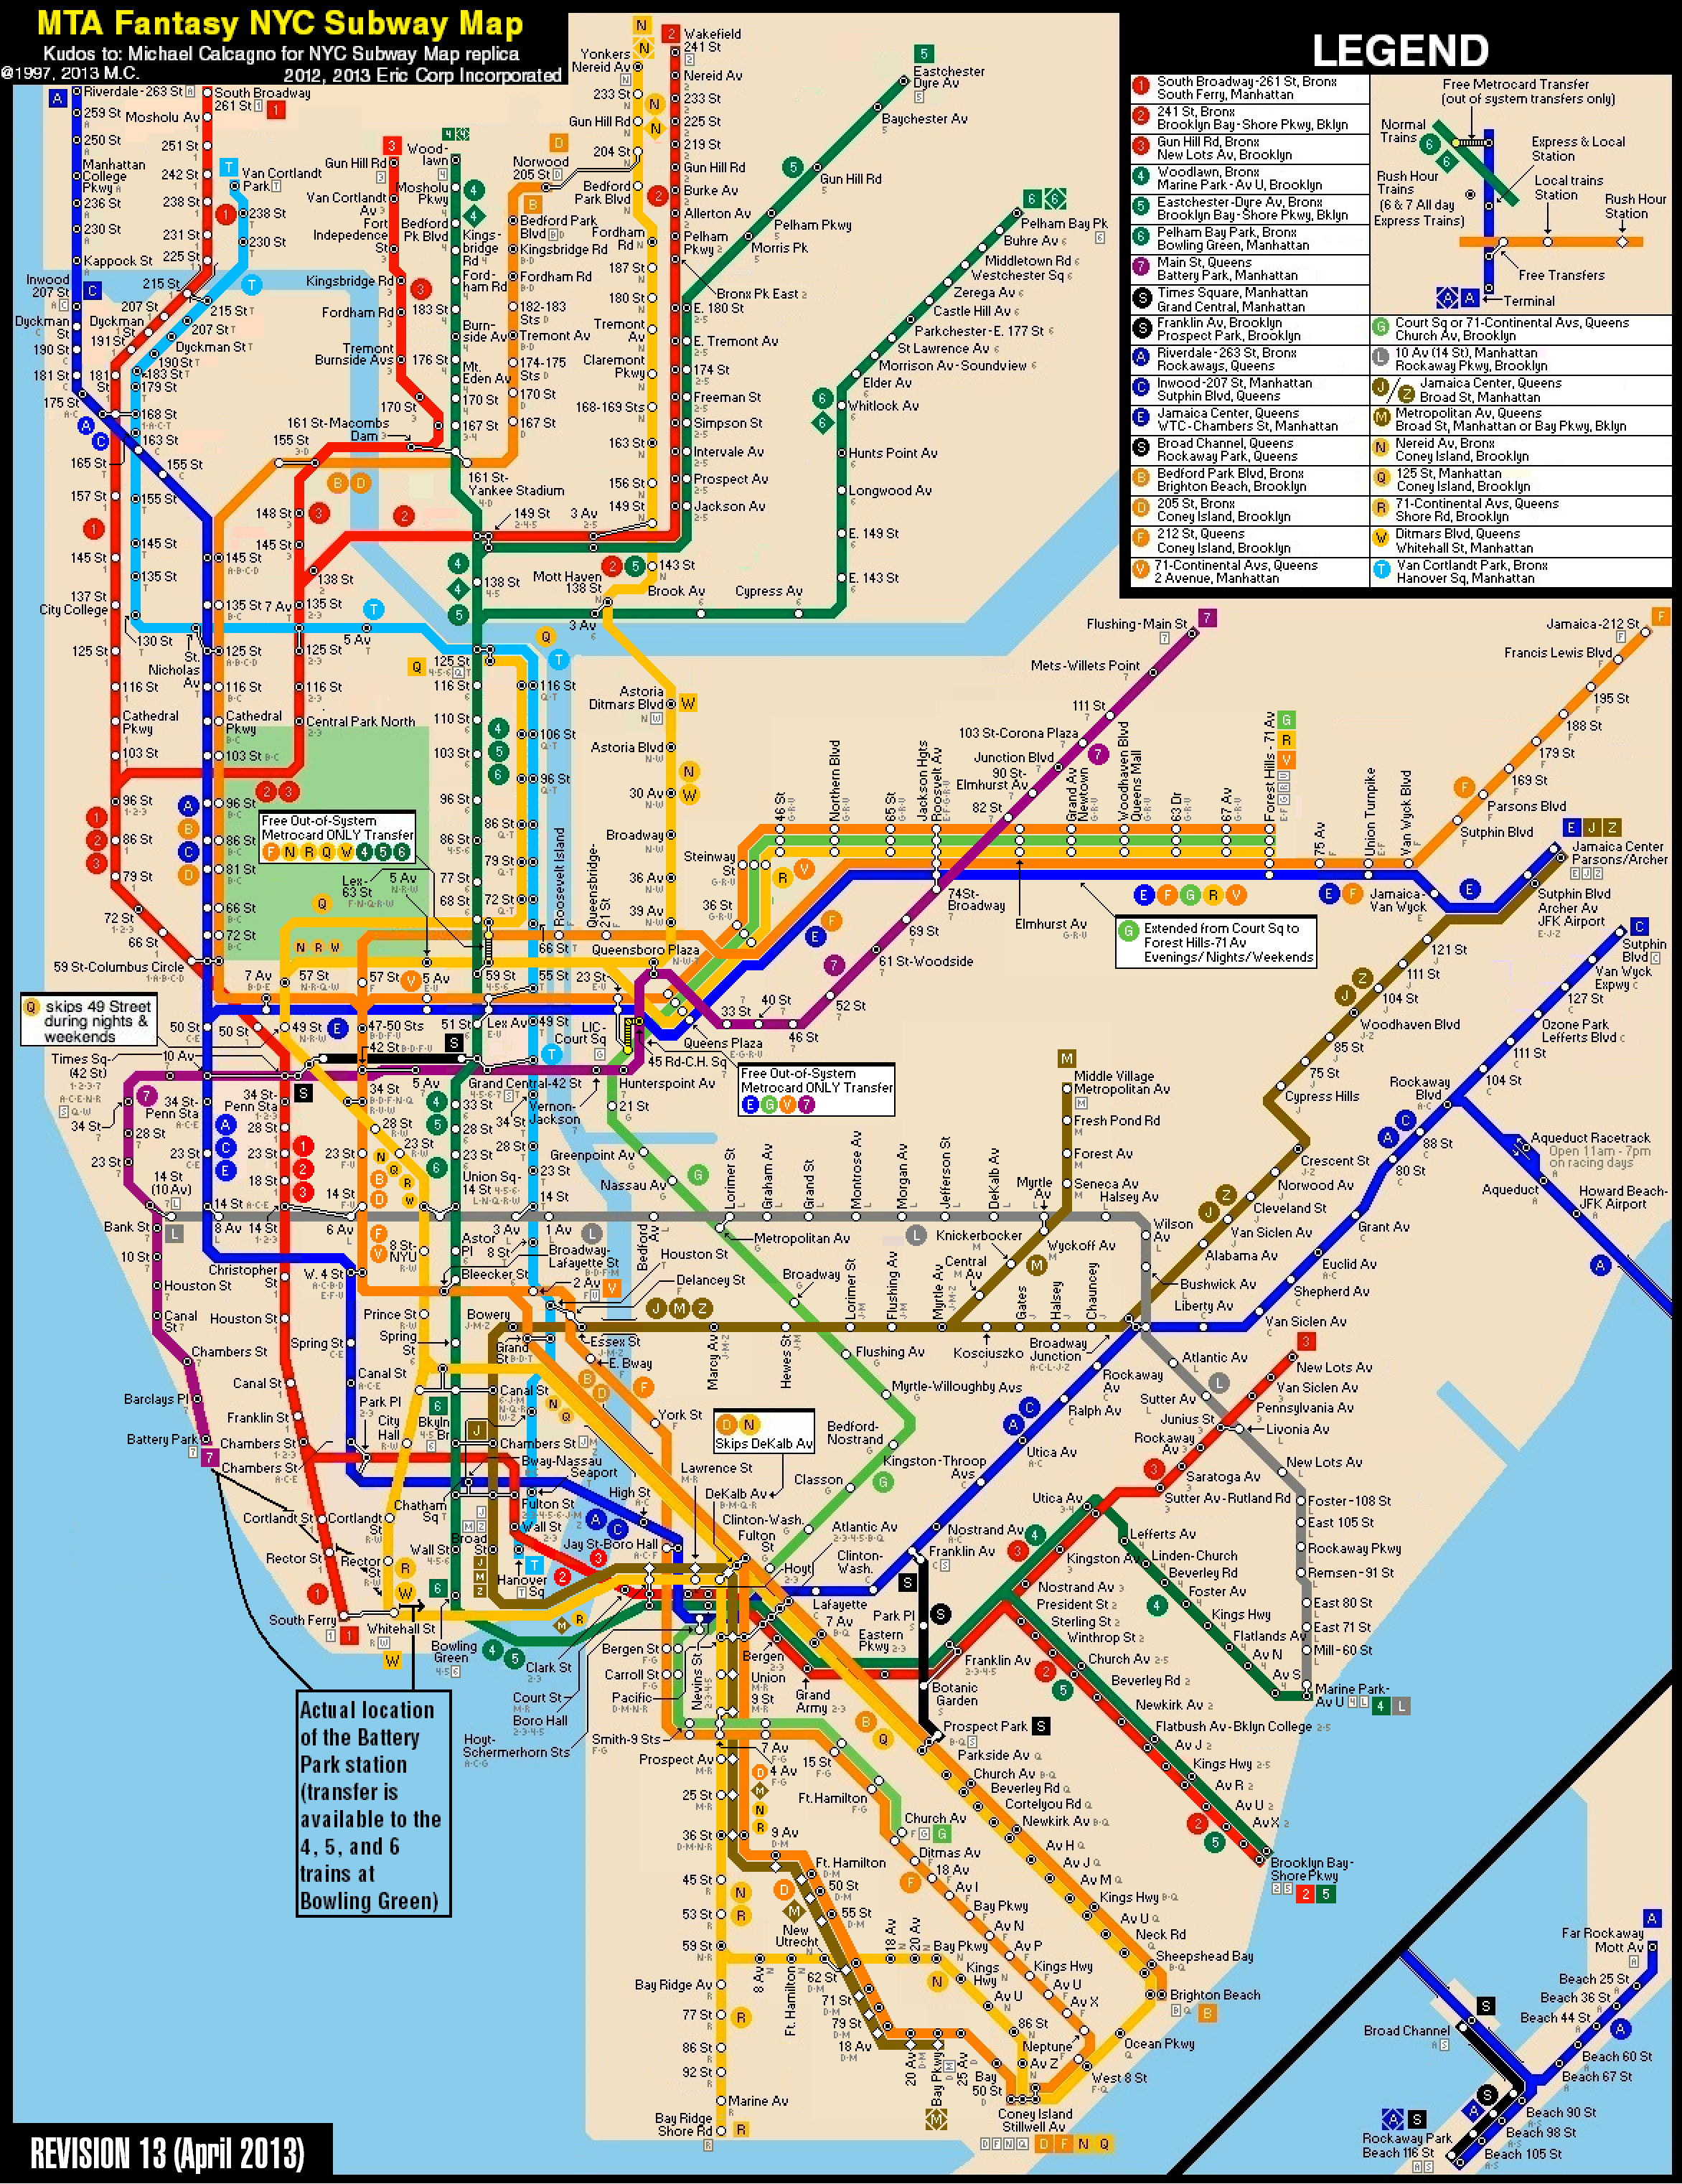 Subway Maps Of Nyc.New York Subway Map New York City Subway Fantasy Map Revision 13 By Ecinc2xxx On New York City Map Nyc Subway Map Nyc Subway